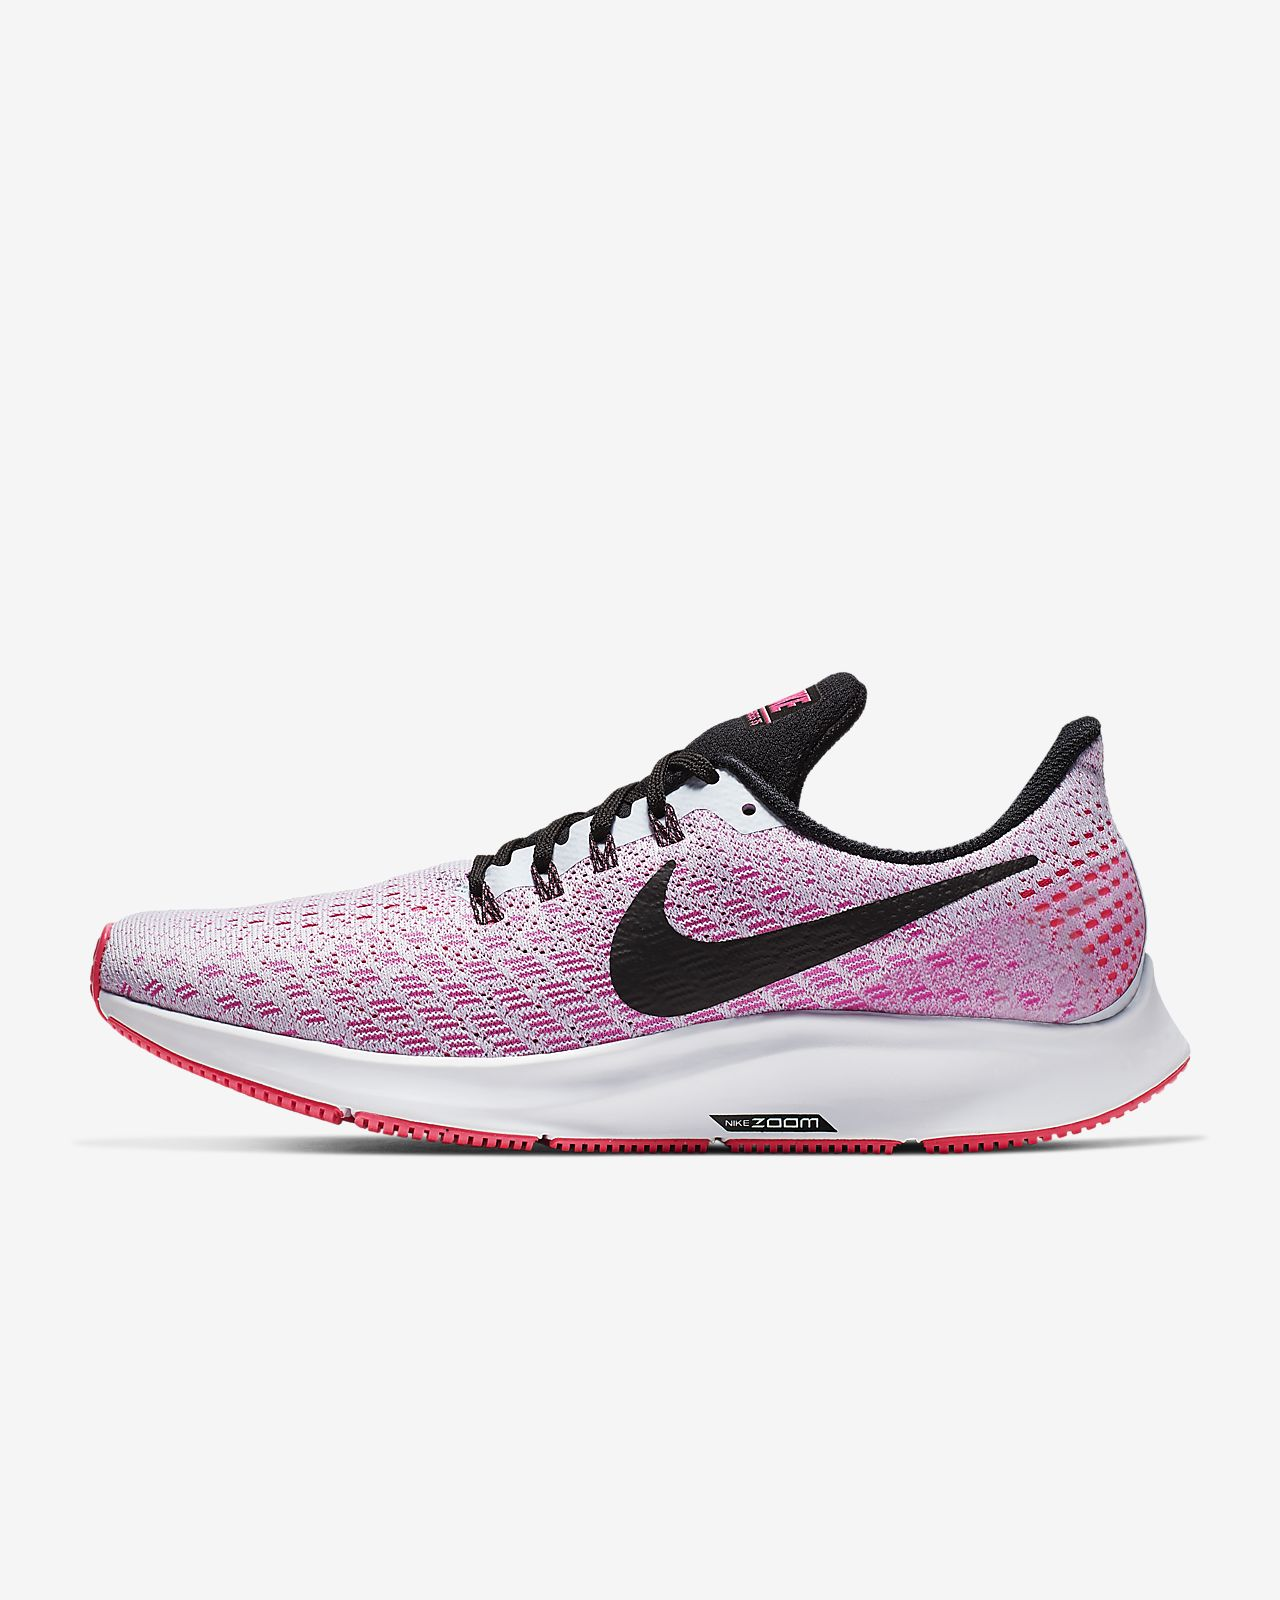 offer discounts low price sale presenting Nike Air Zoom Pegasus 35 Women's Running Shoe